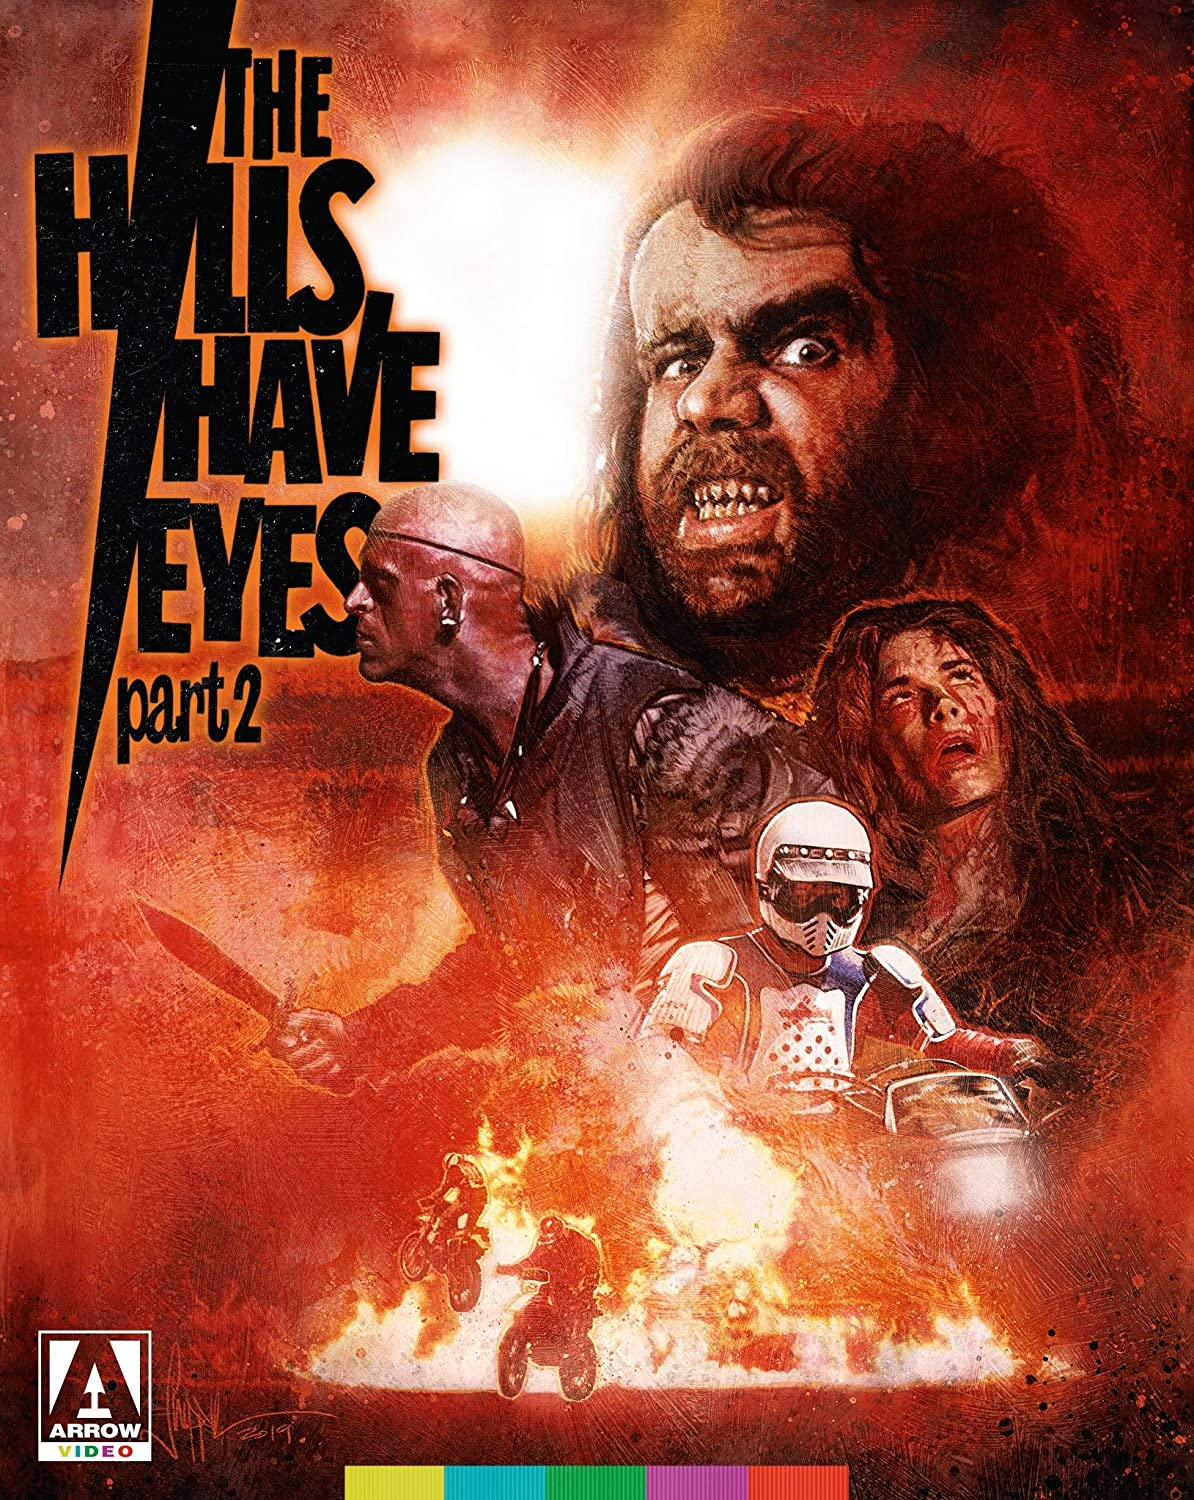 The Hills Have Eyes Part 2 Blu-ray